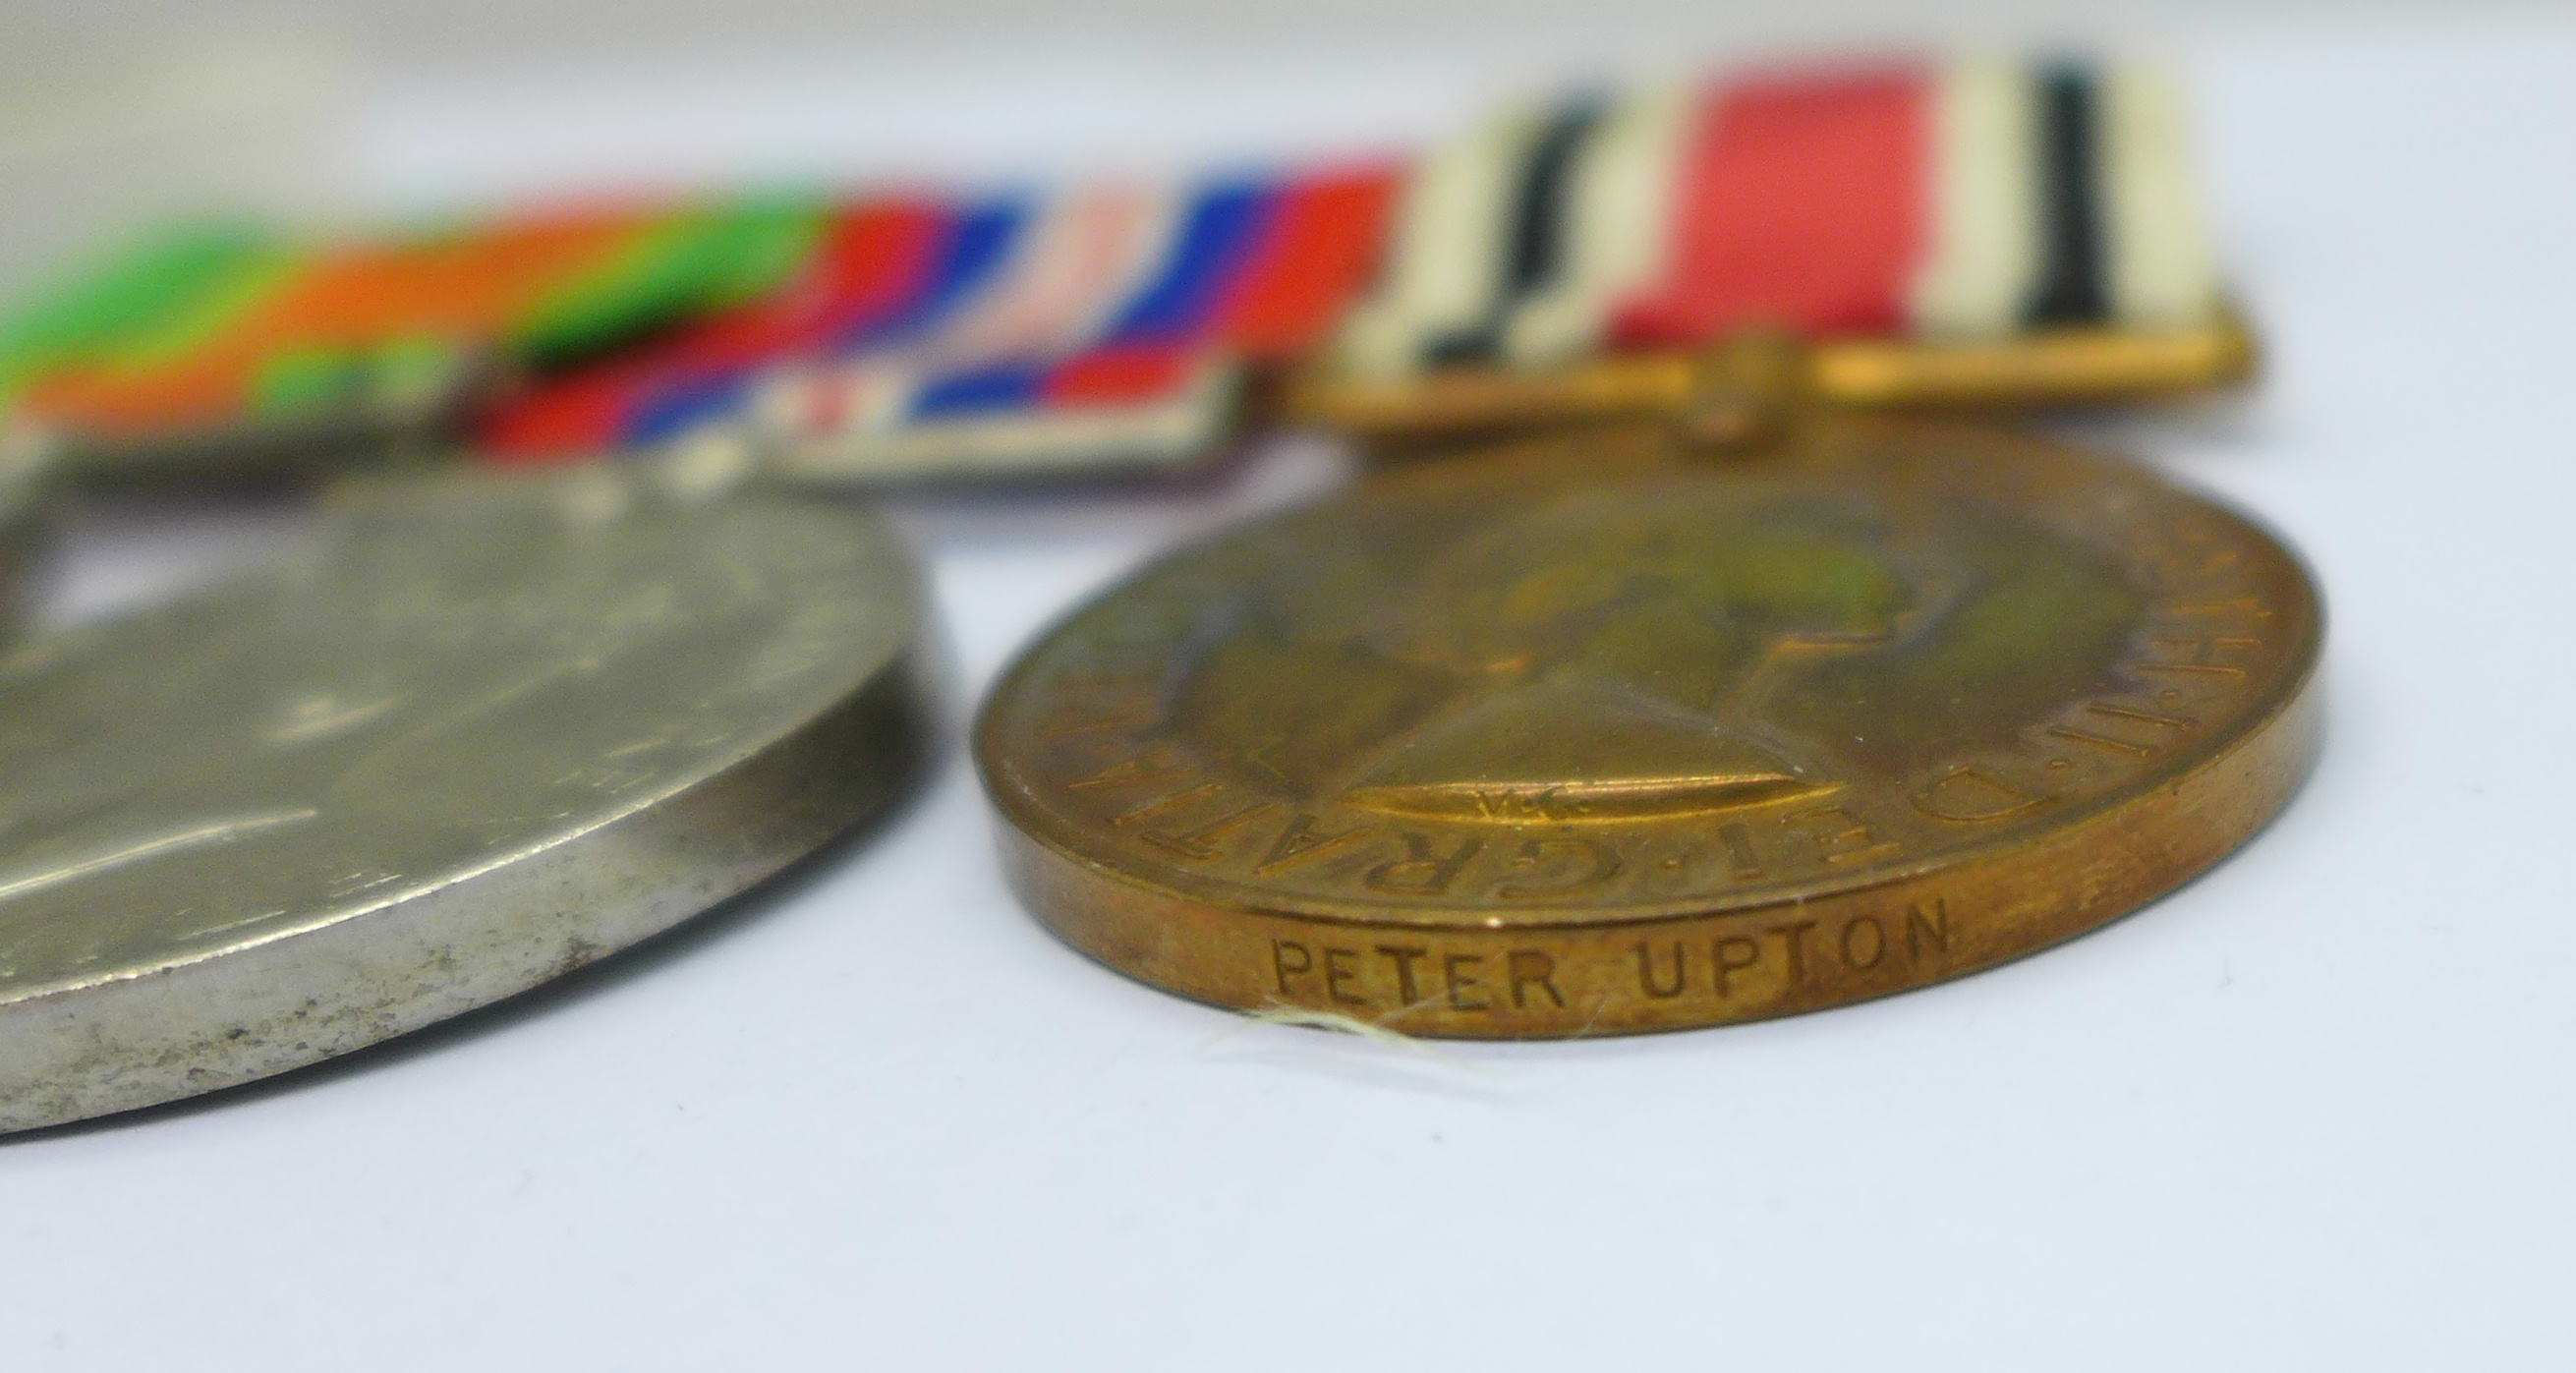 A family group of medals, three WWII medals including Special Constable, a trio of WWI medals to - Image 5 of 6